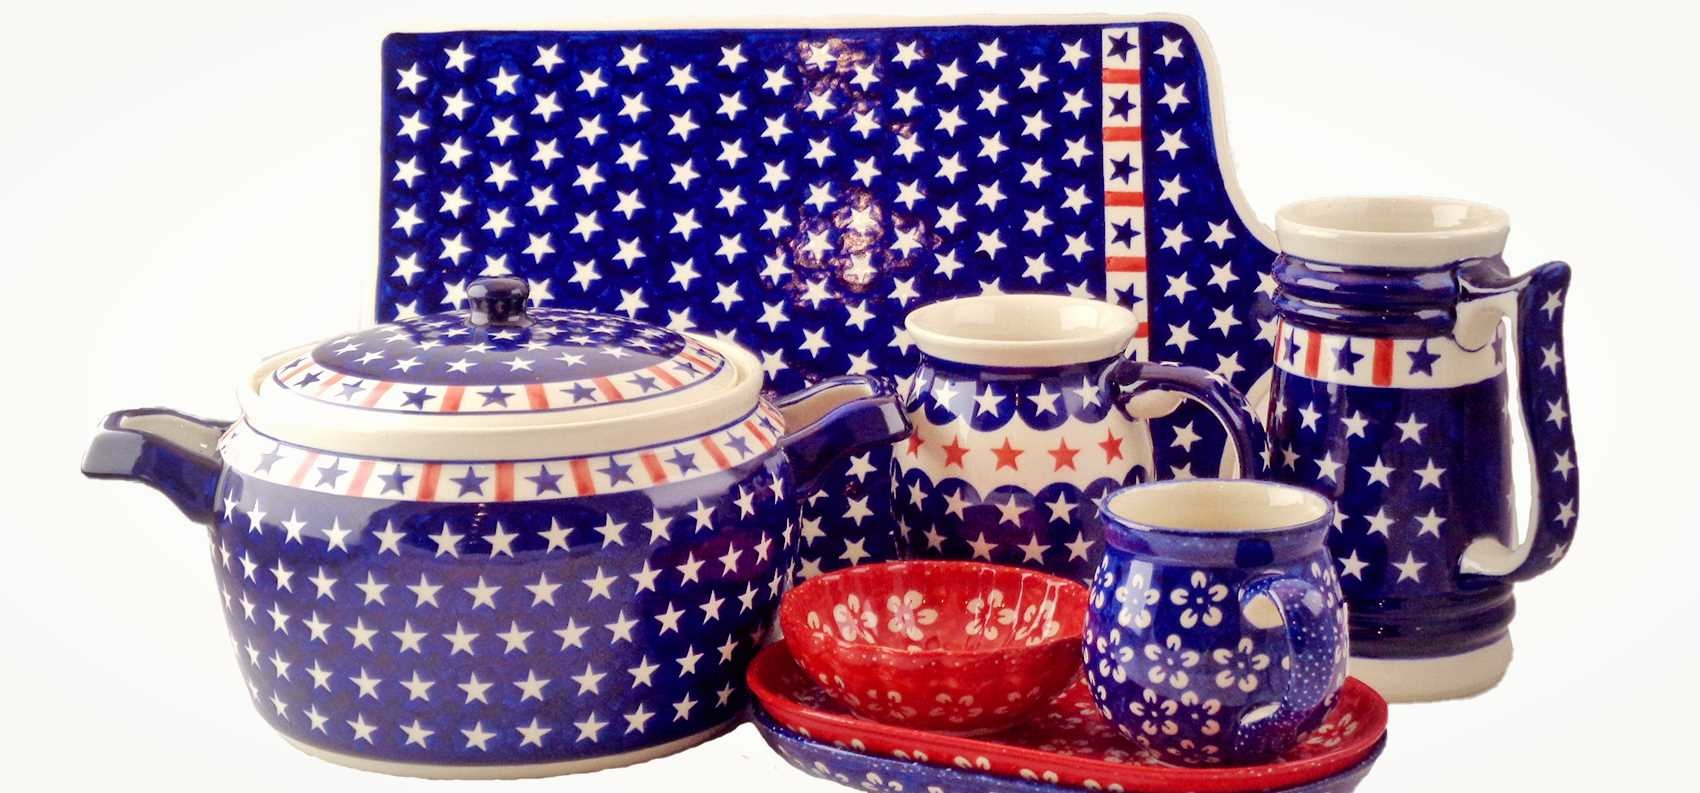 Polish Pottery Patterns For Independence Day